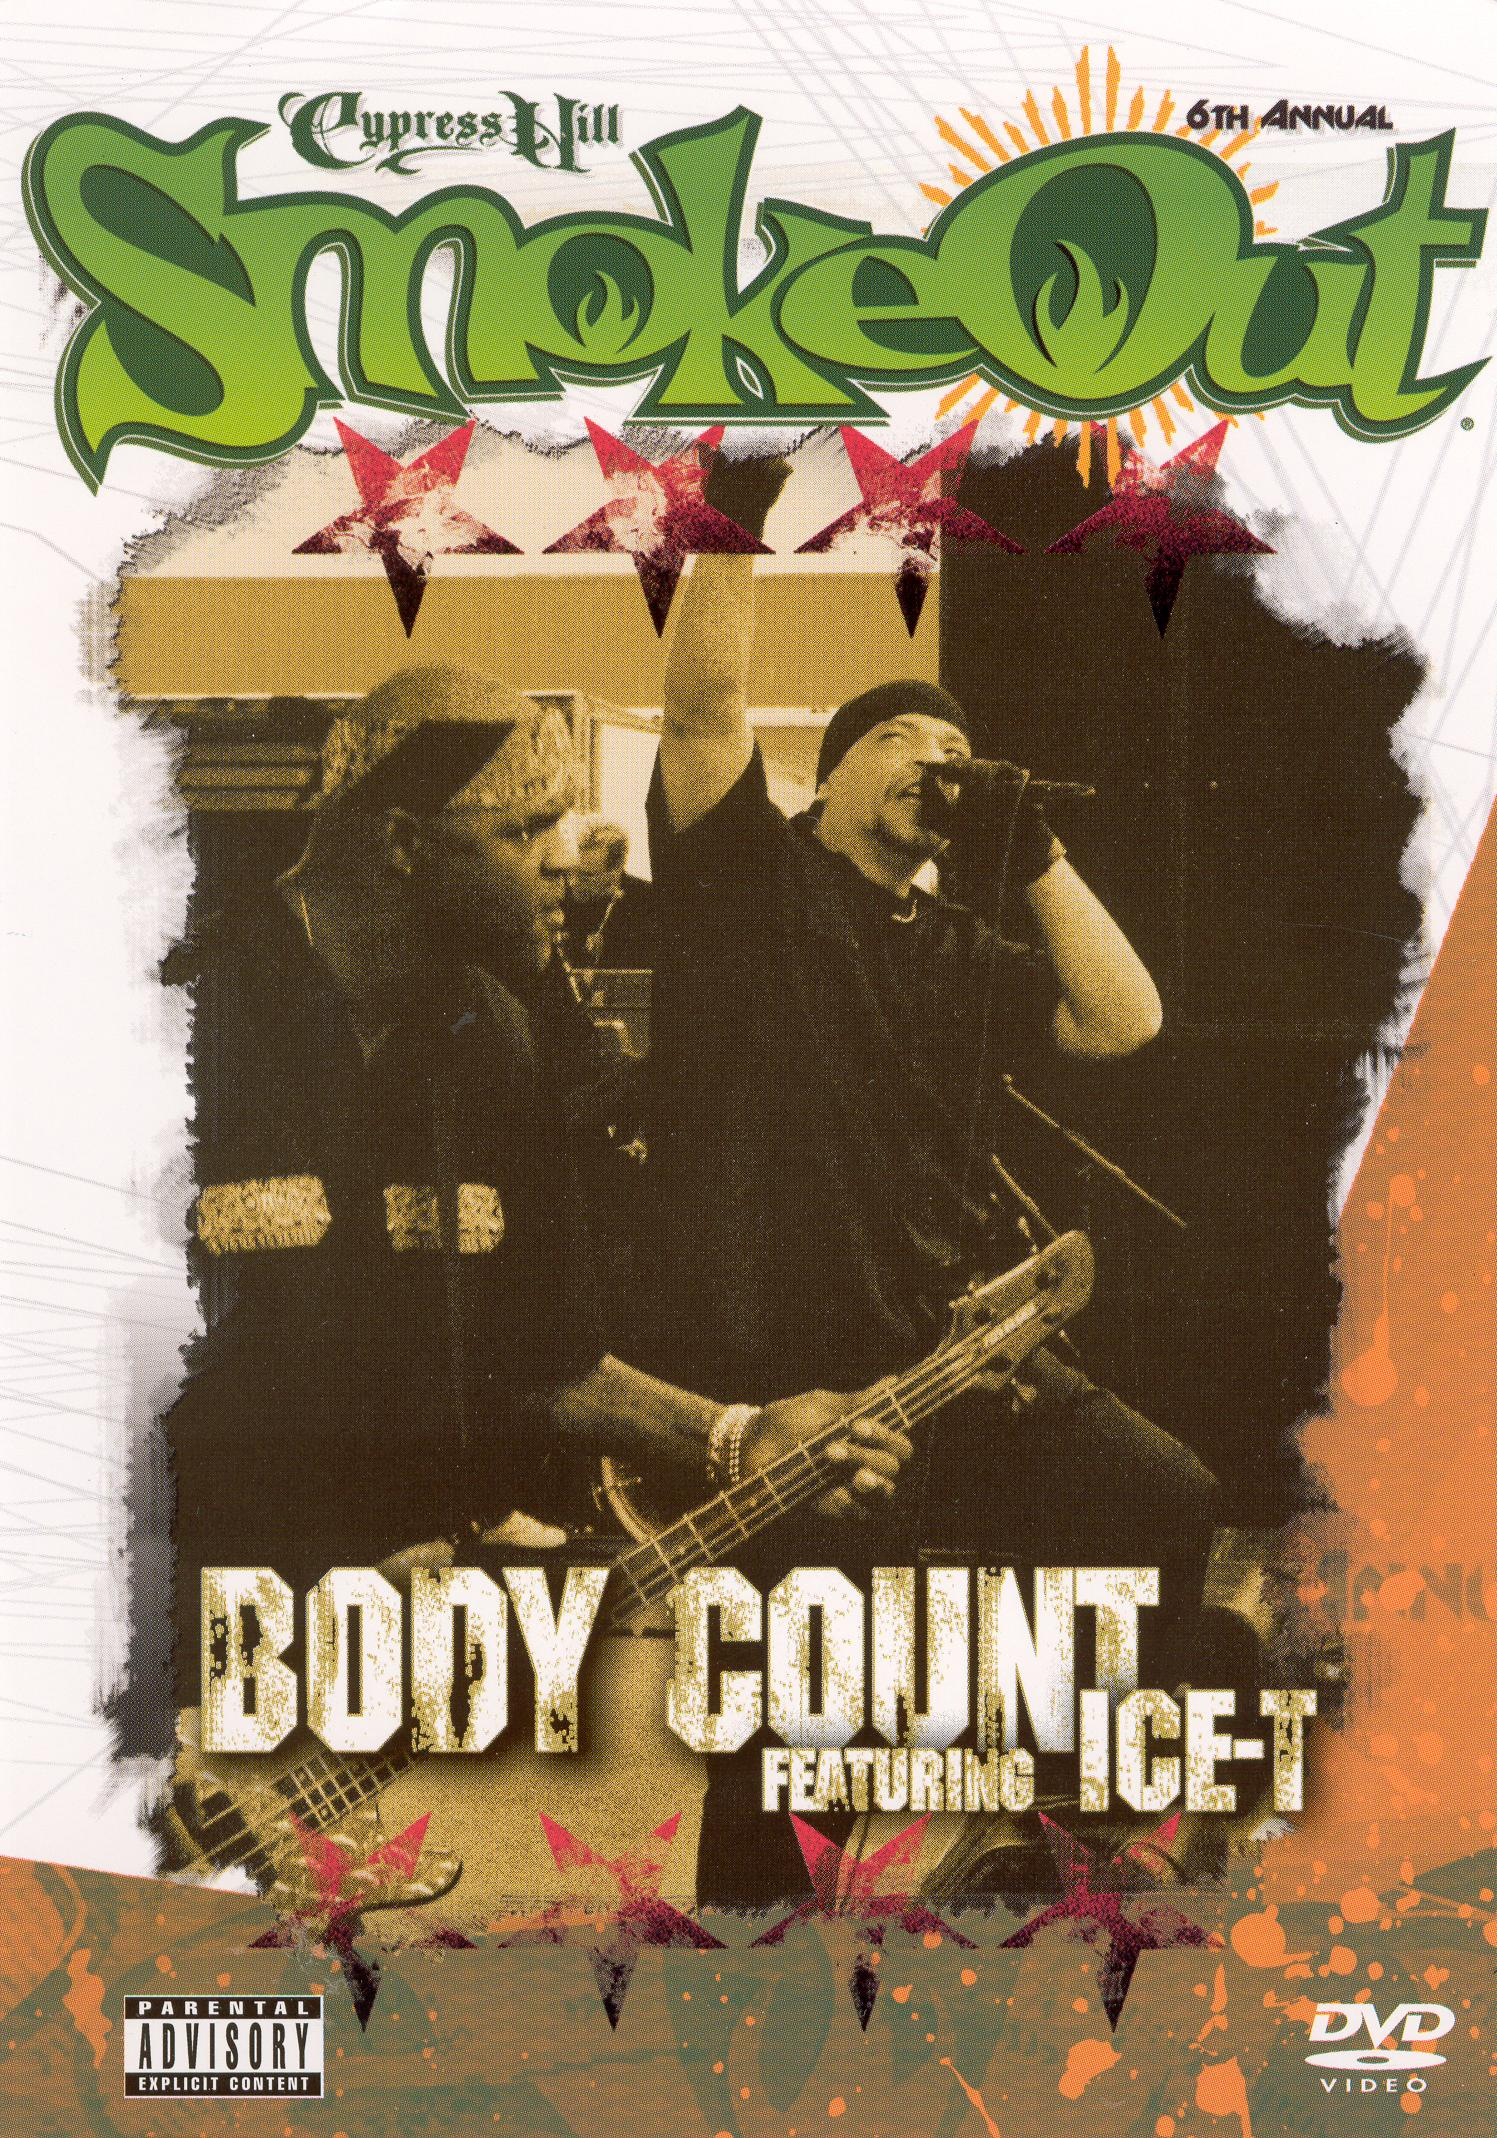 Body Count Featuring Ice-T: 6th Annual Smoke Out